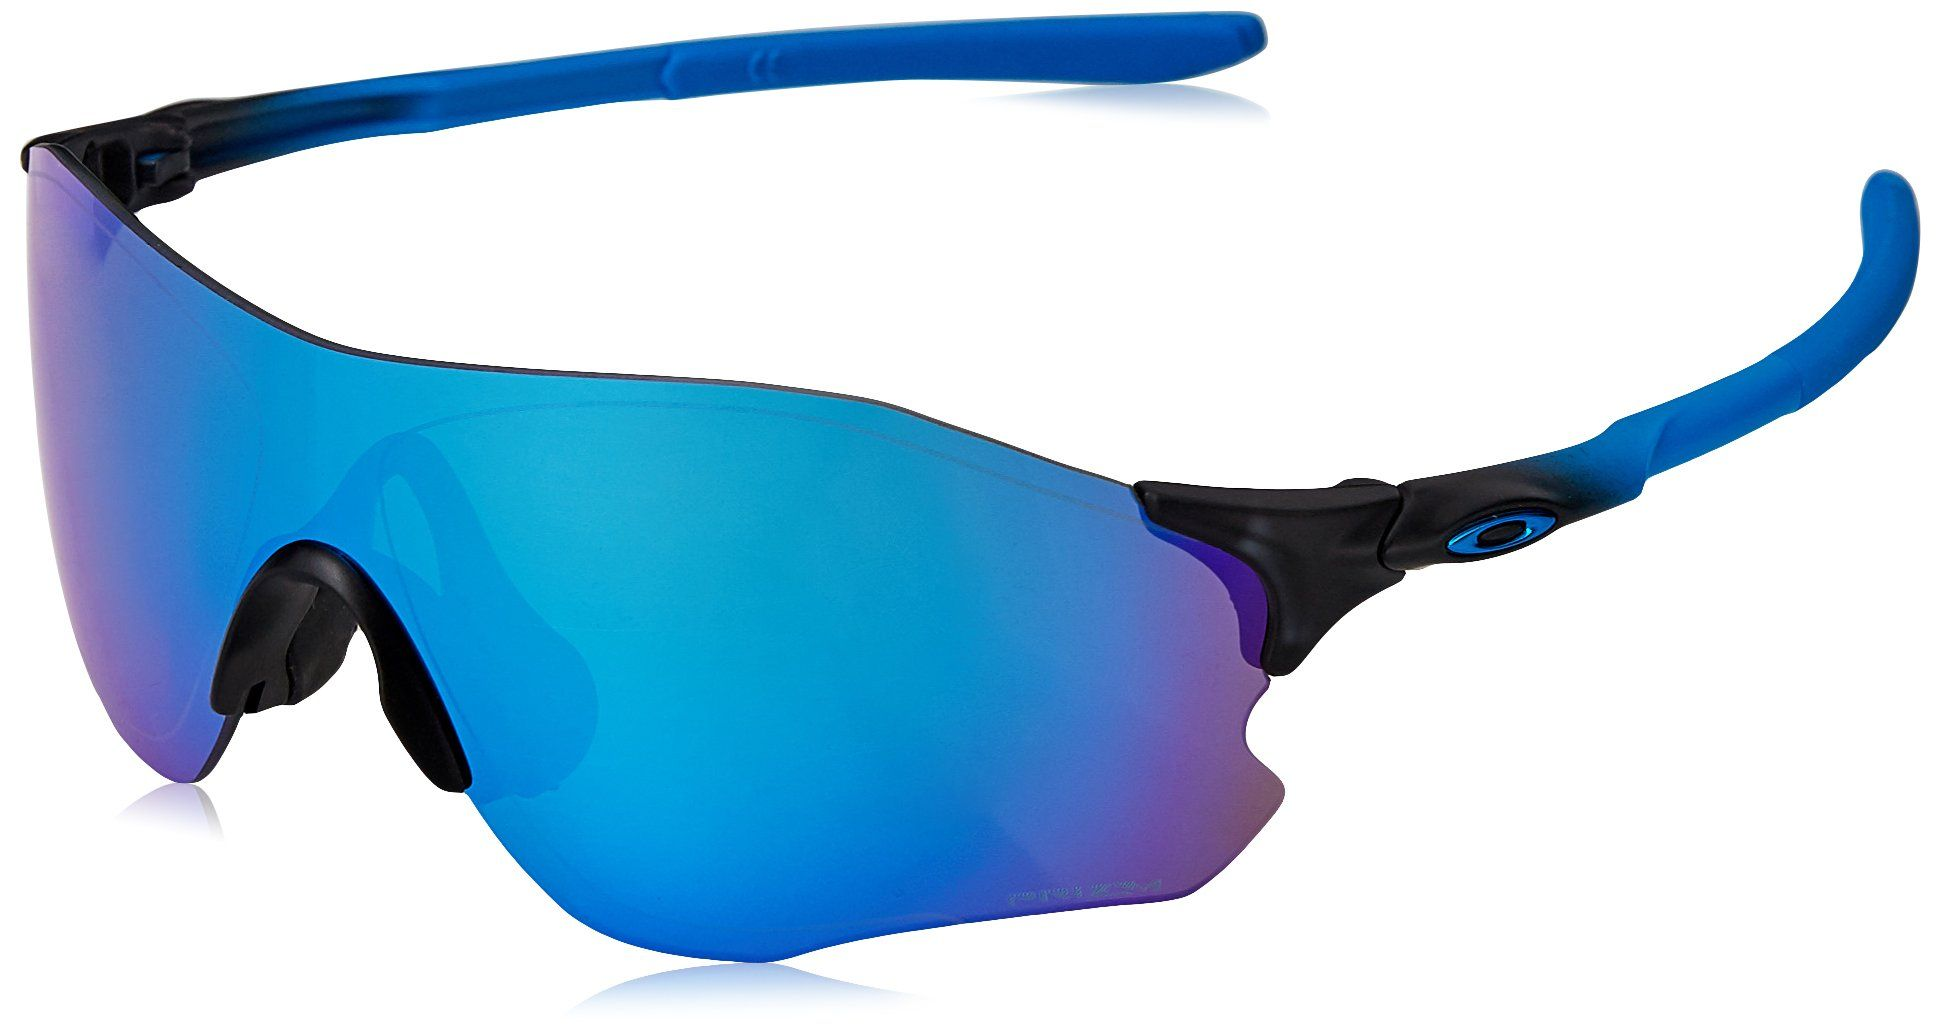 5fdcb073758 Oakley Mens Evzero Path Polarized Iridium Rectangular Sunglasses Sapphire  Fade 38 mm     Details can be found by clicking on the image.